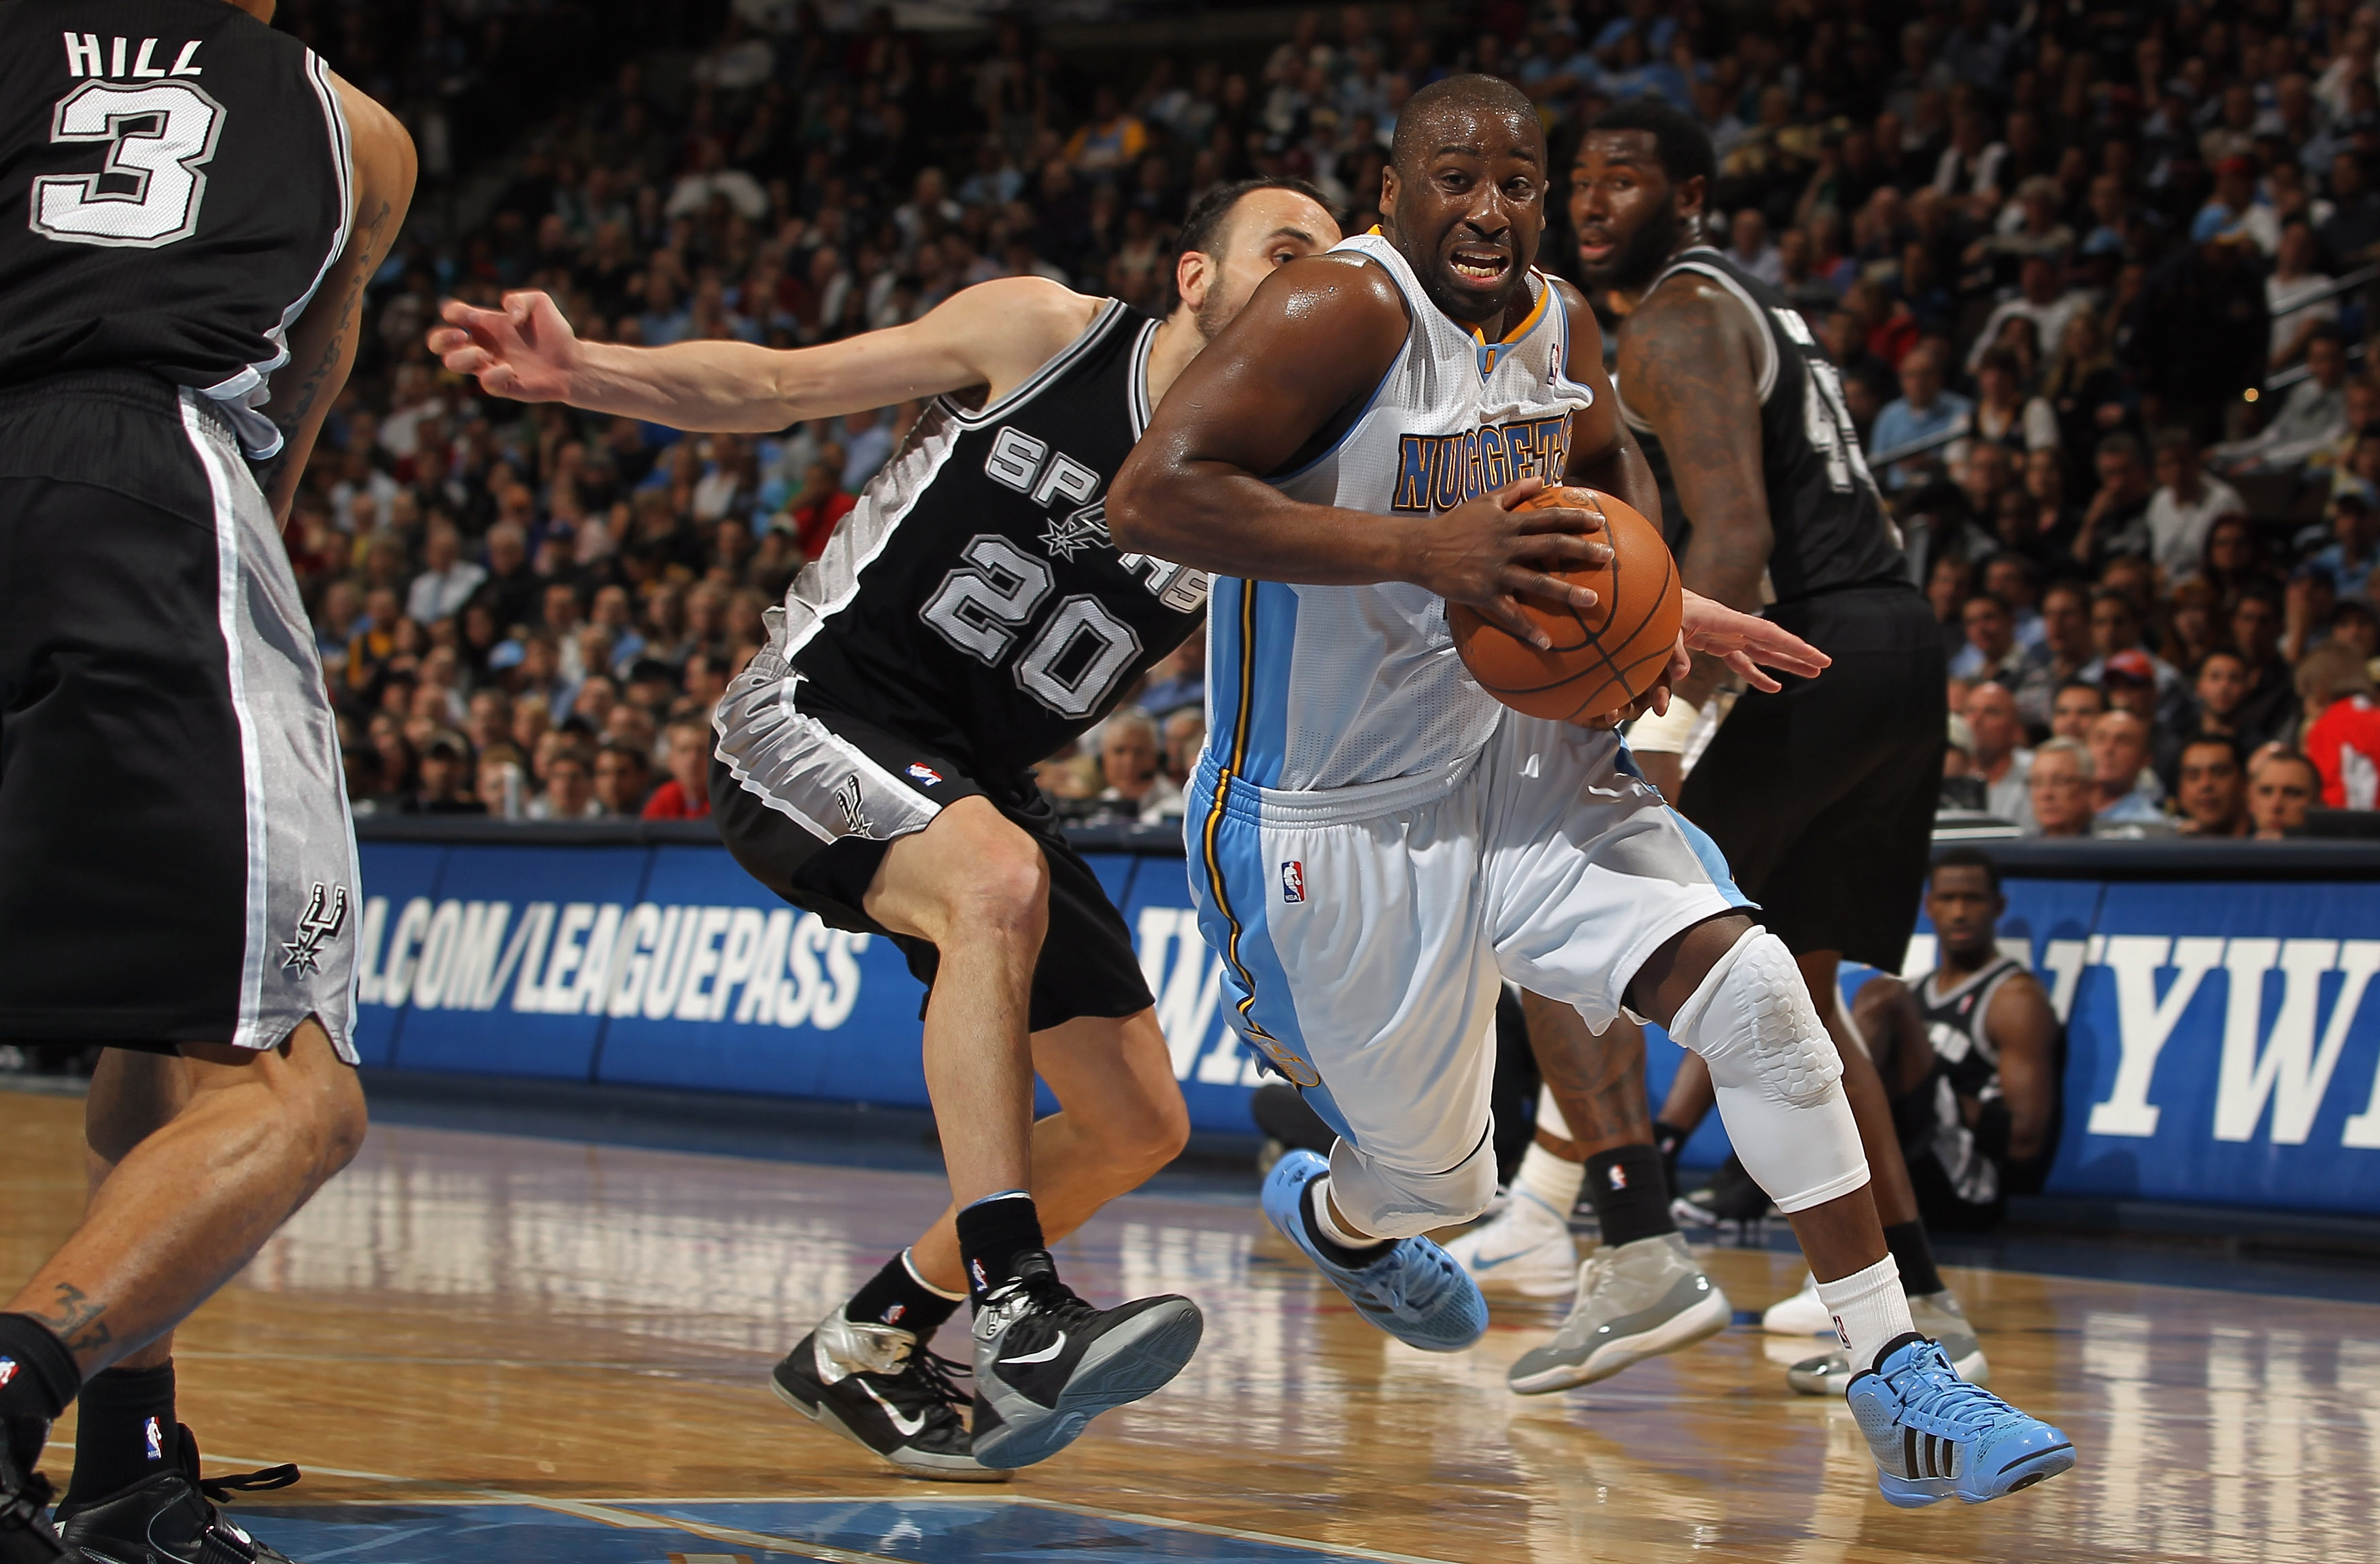 DENVER, CO - MARCH 23:  Raymond Felton #20 of the Denver Nuggets drives past Manu Ginobili #20 of the San Antonio Spurs at the Pepsi Center on March 23, 2011 in Denver, Colorado. The Nuggets defeated the Spurs 115-112. NOTE TO USER: User expressly acknowl